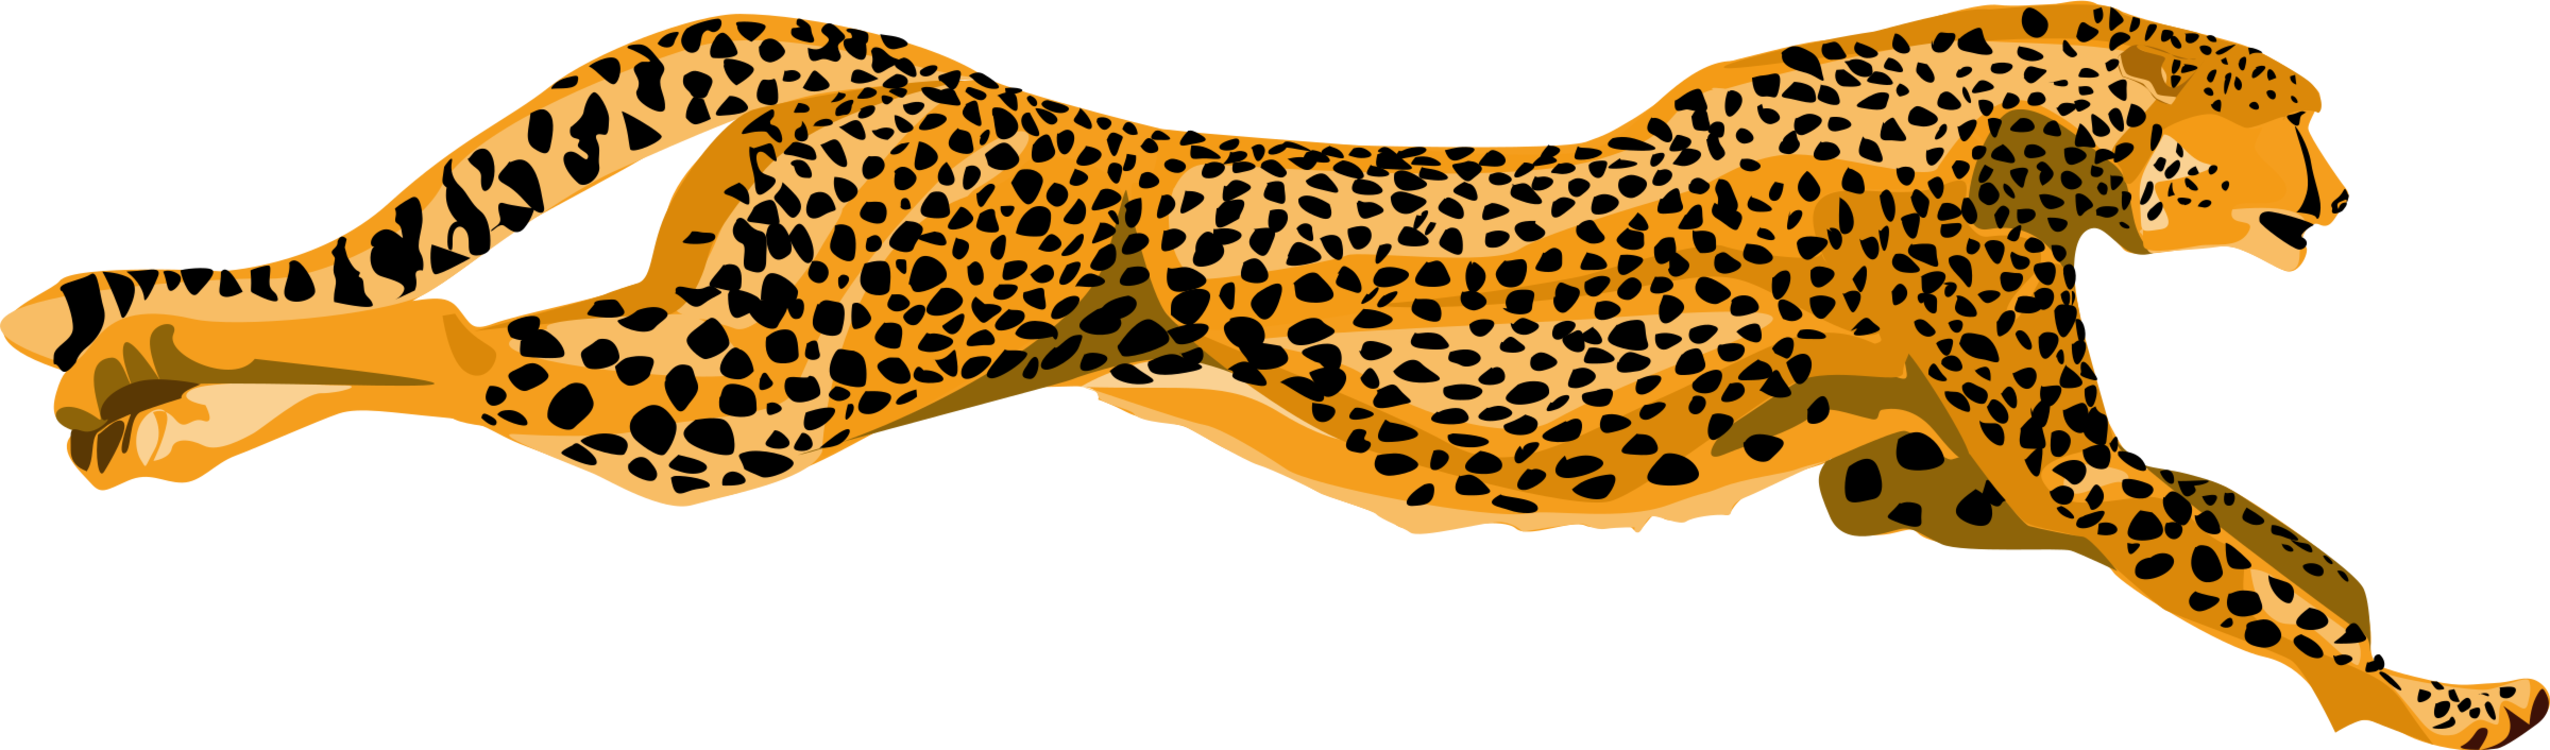 cheetah jaguar felidae leopard lion free commercial clipart rh kisscc0 com cheetah clip art svg cheetah clip art svg